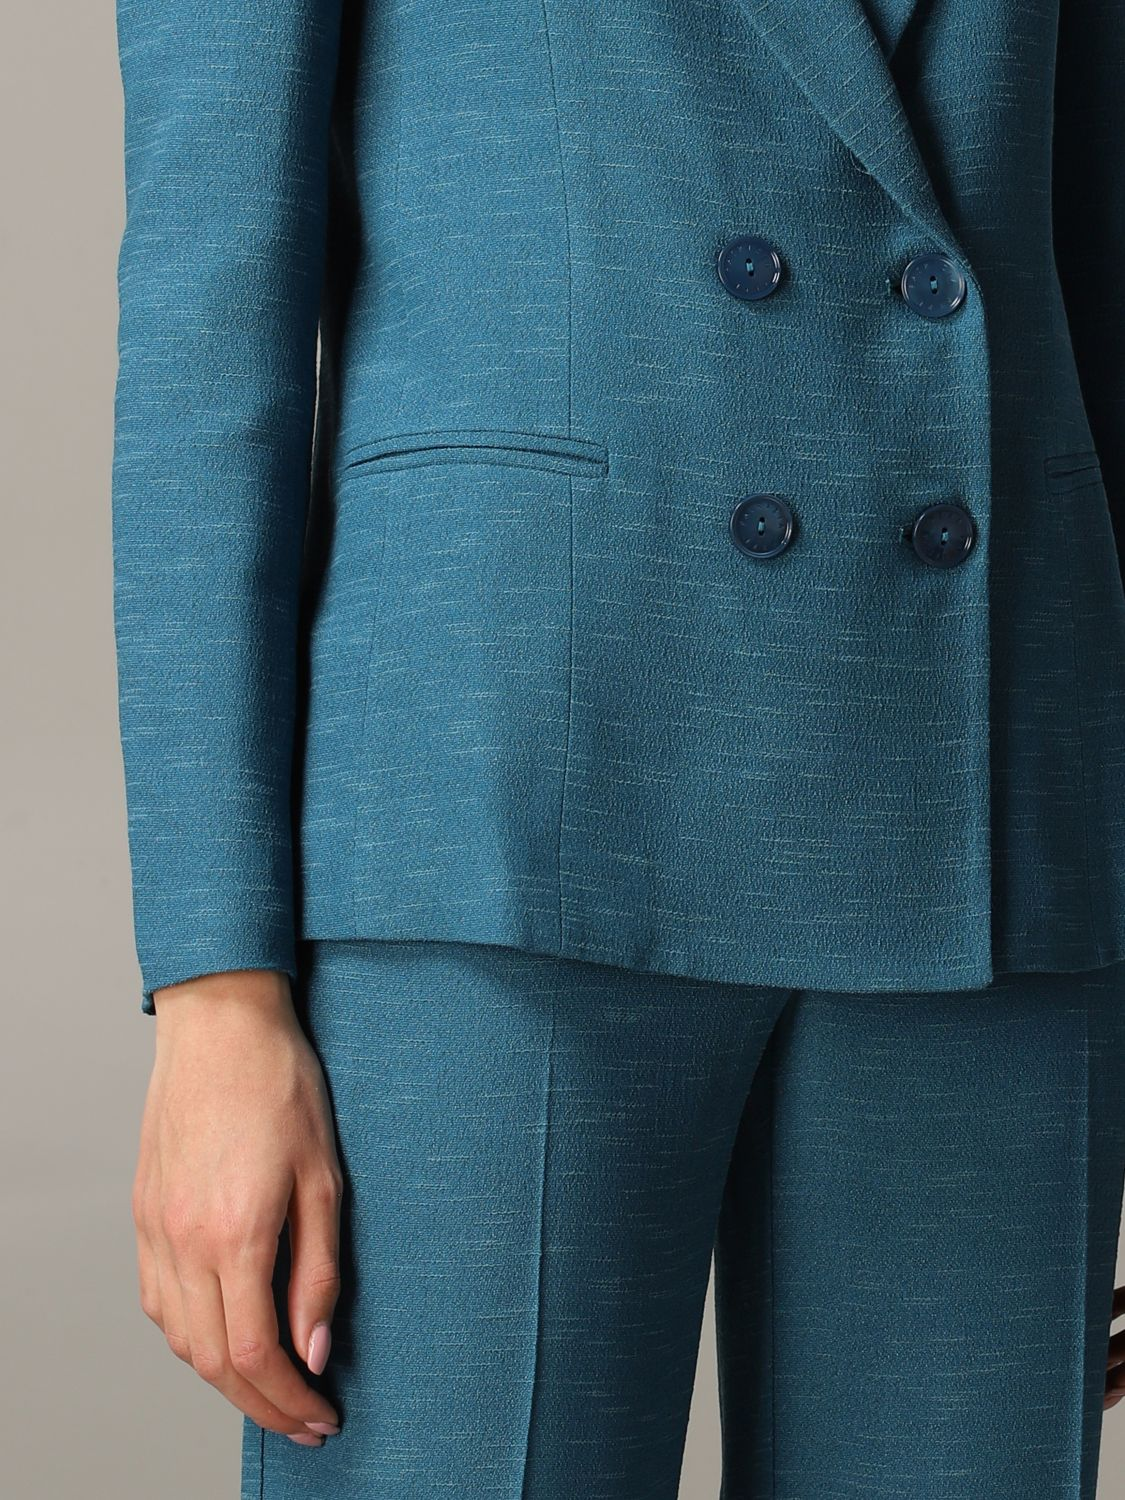 Patrizia Pepe double-breasted jacket teal 5